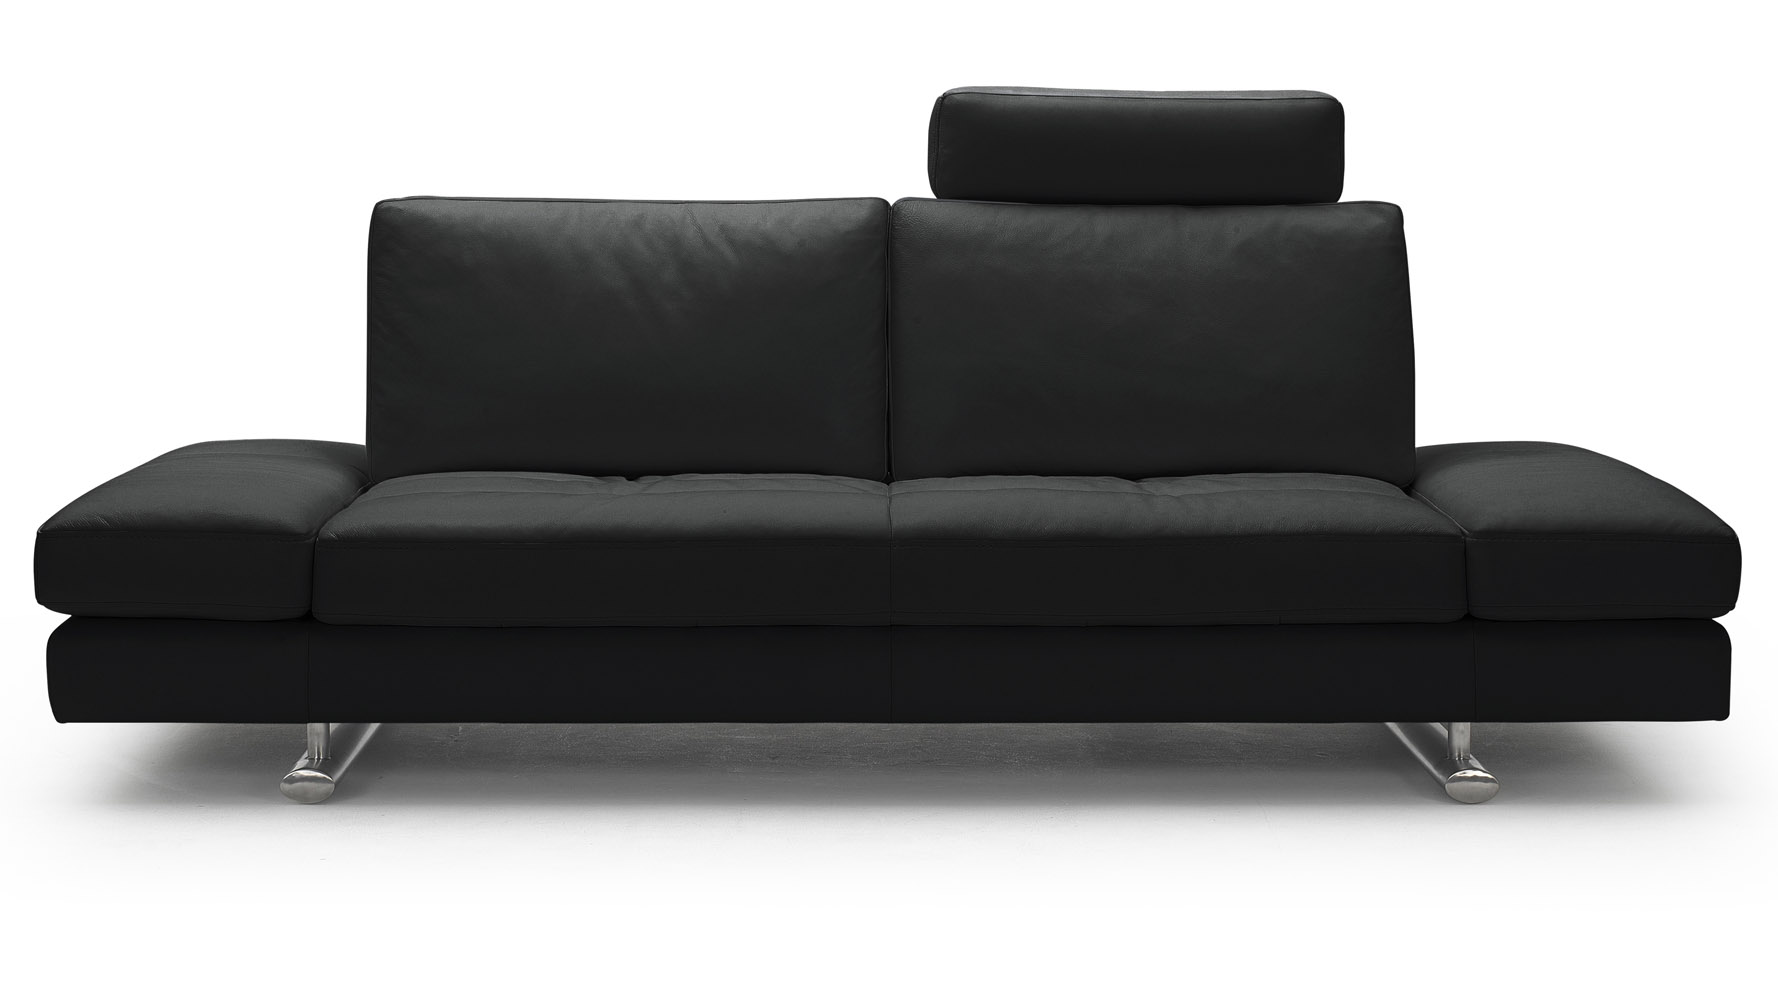 bentley recliner sofa loveseat and armchair set mexican black top grain leather modern with